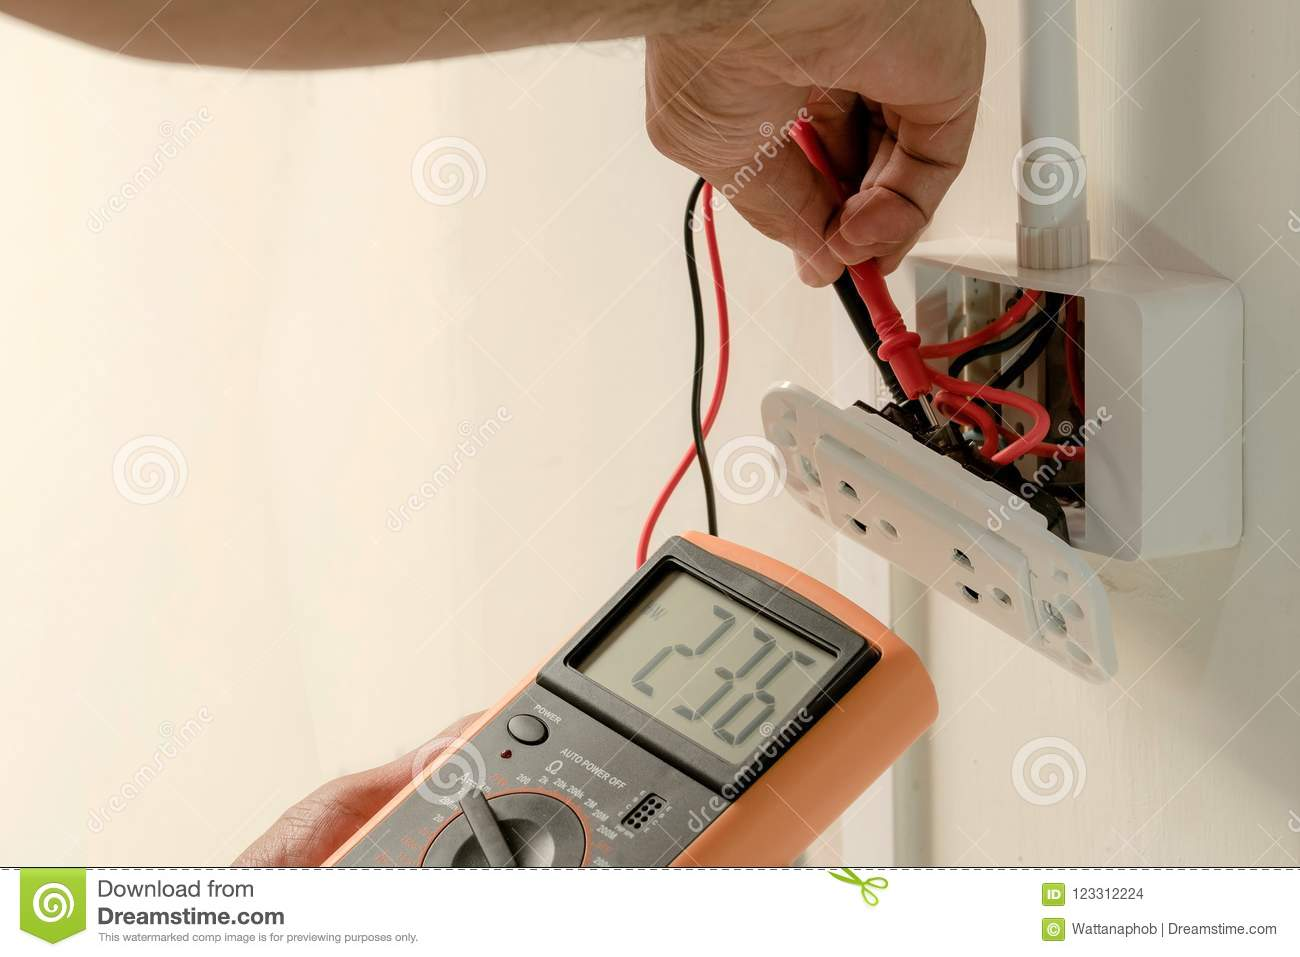 hight resolution of electrician is using a digital meter to measure the voltage at the power outlet in on the wall